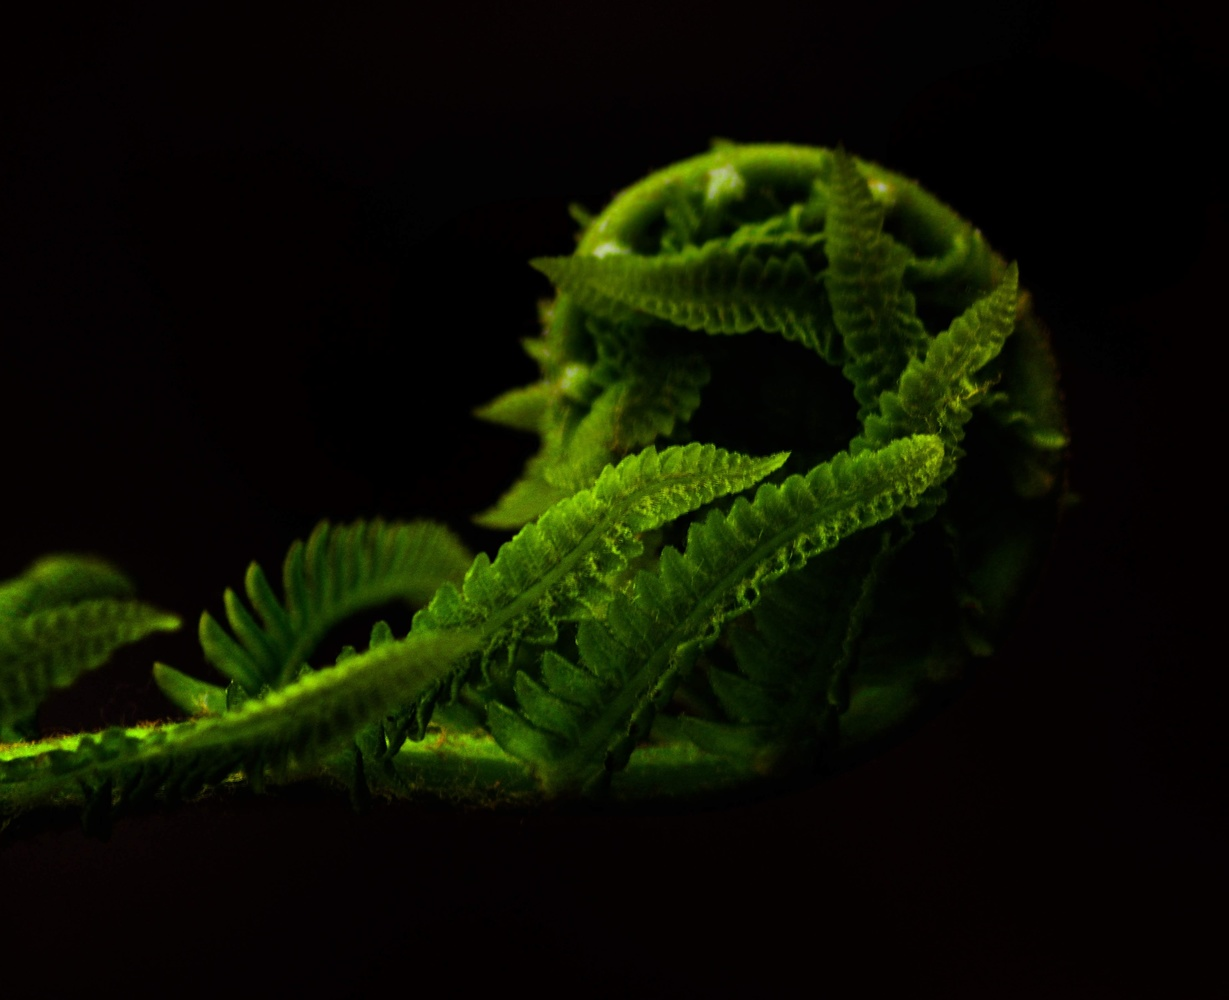 Ferns by Ruth Carll